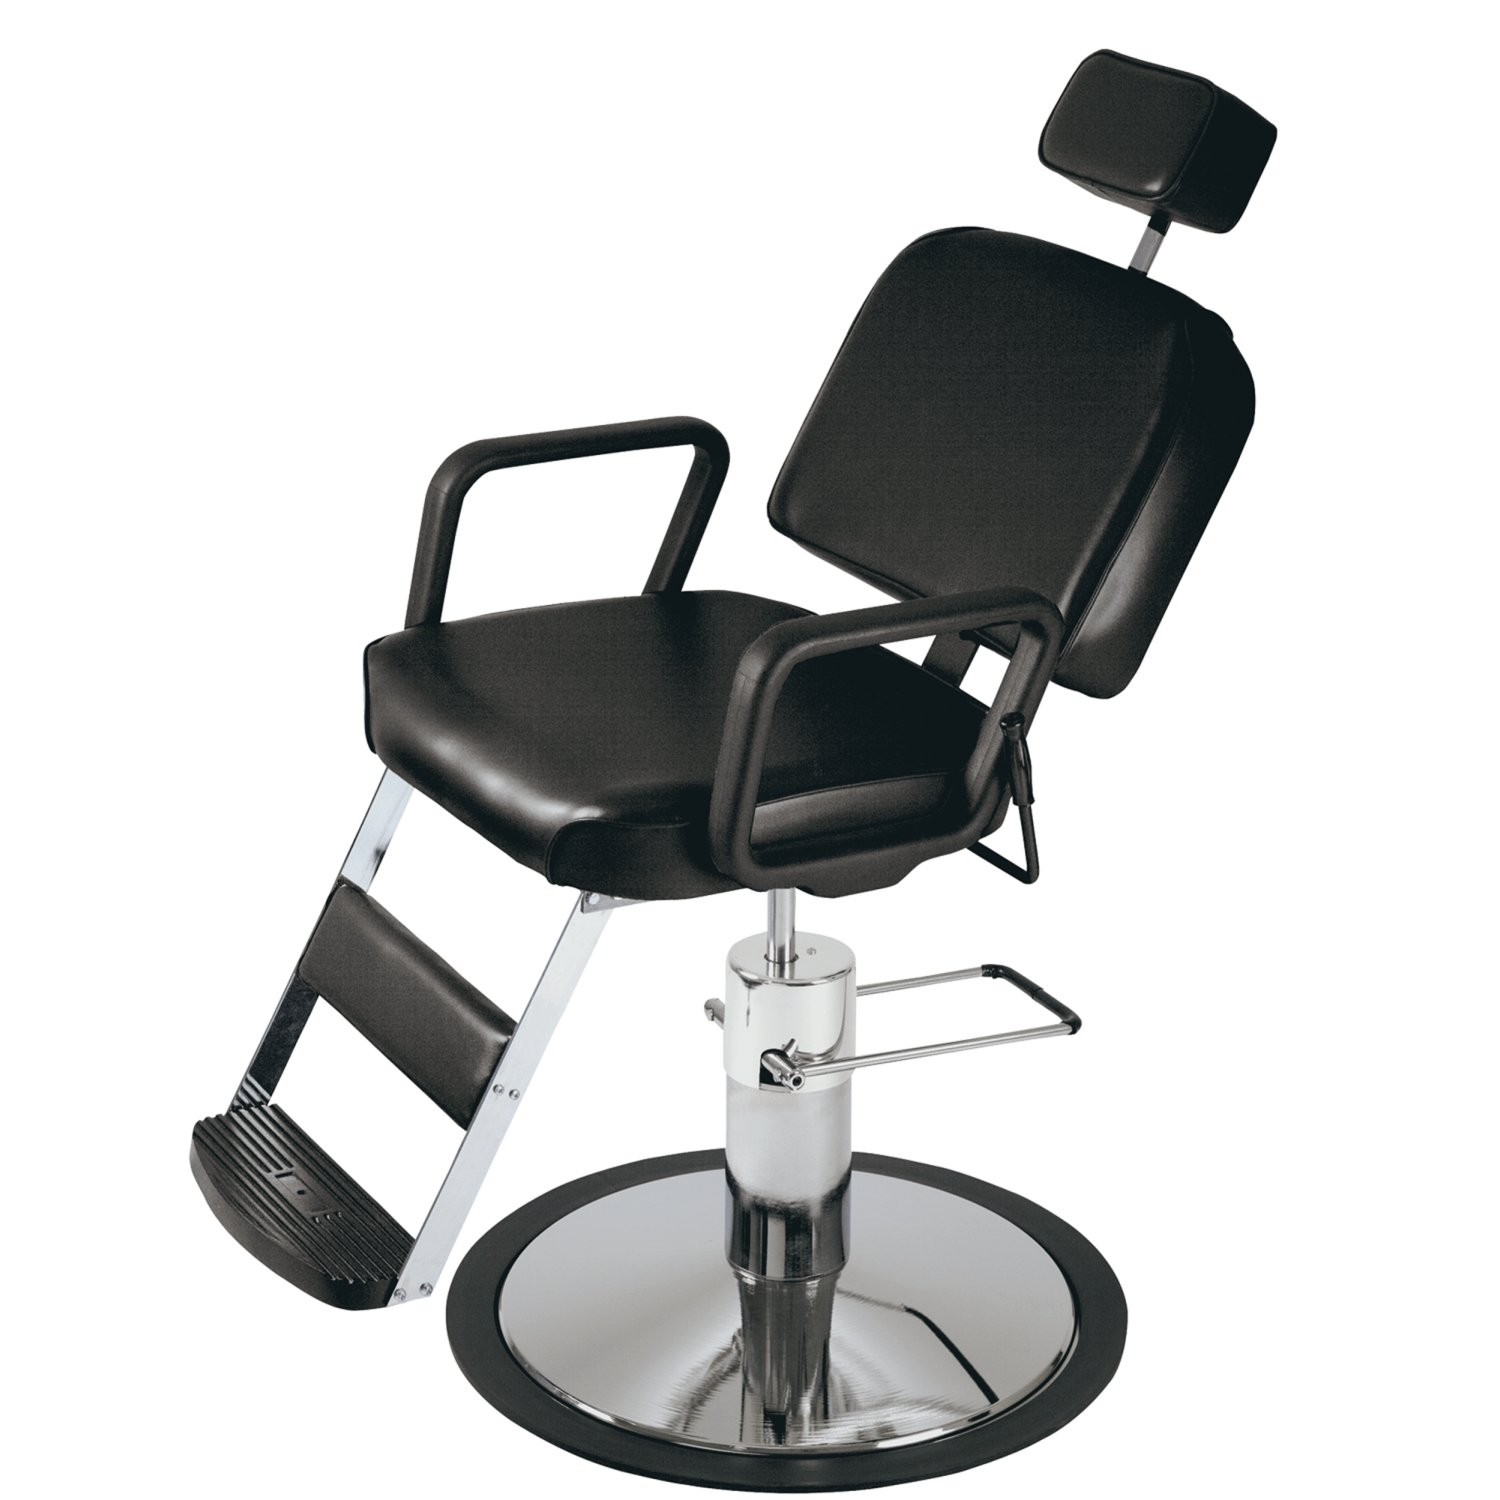 The Best Prince Barber Chair 4391 Pictures